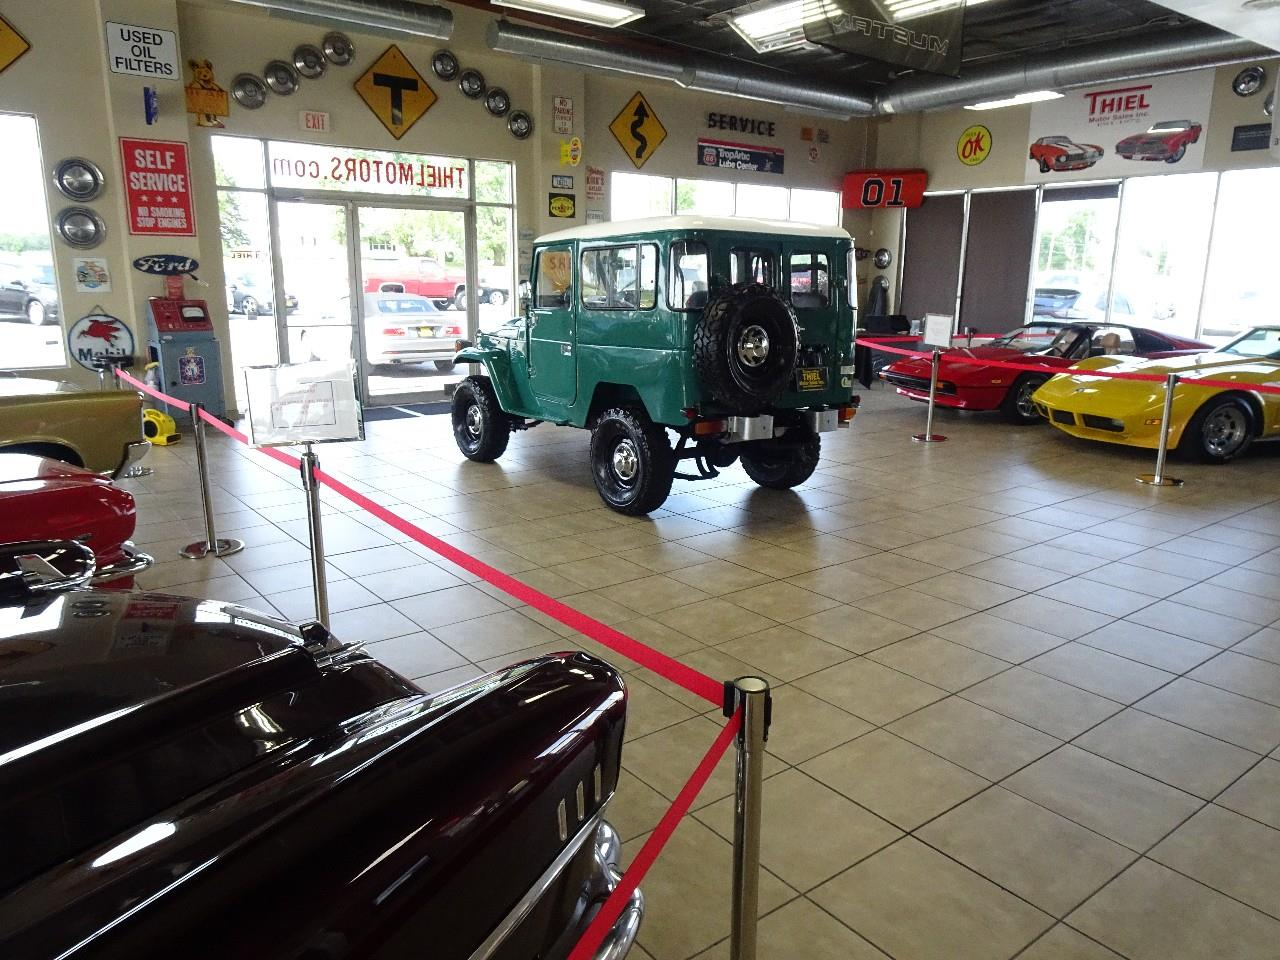 Large Picture of 1978 Toyota Land Cruiser FJ40 located in De Witt Iowa Offered by Thiel Motor Sales Inc. - QCAV